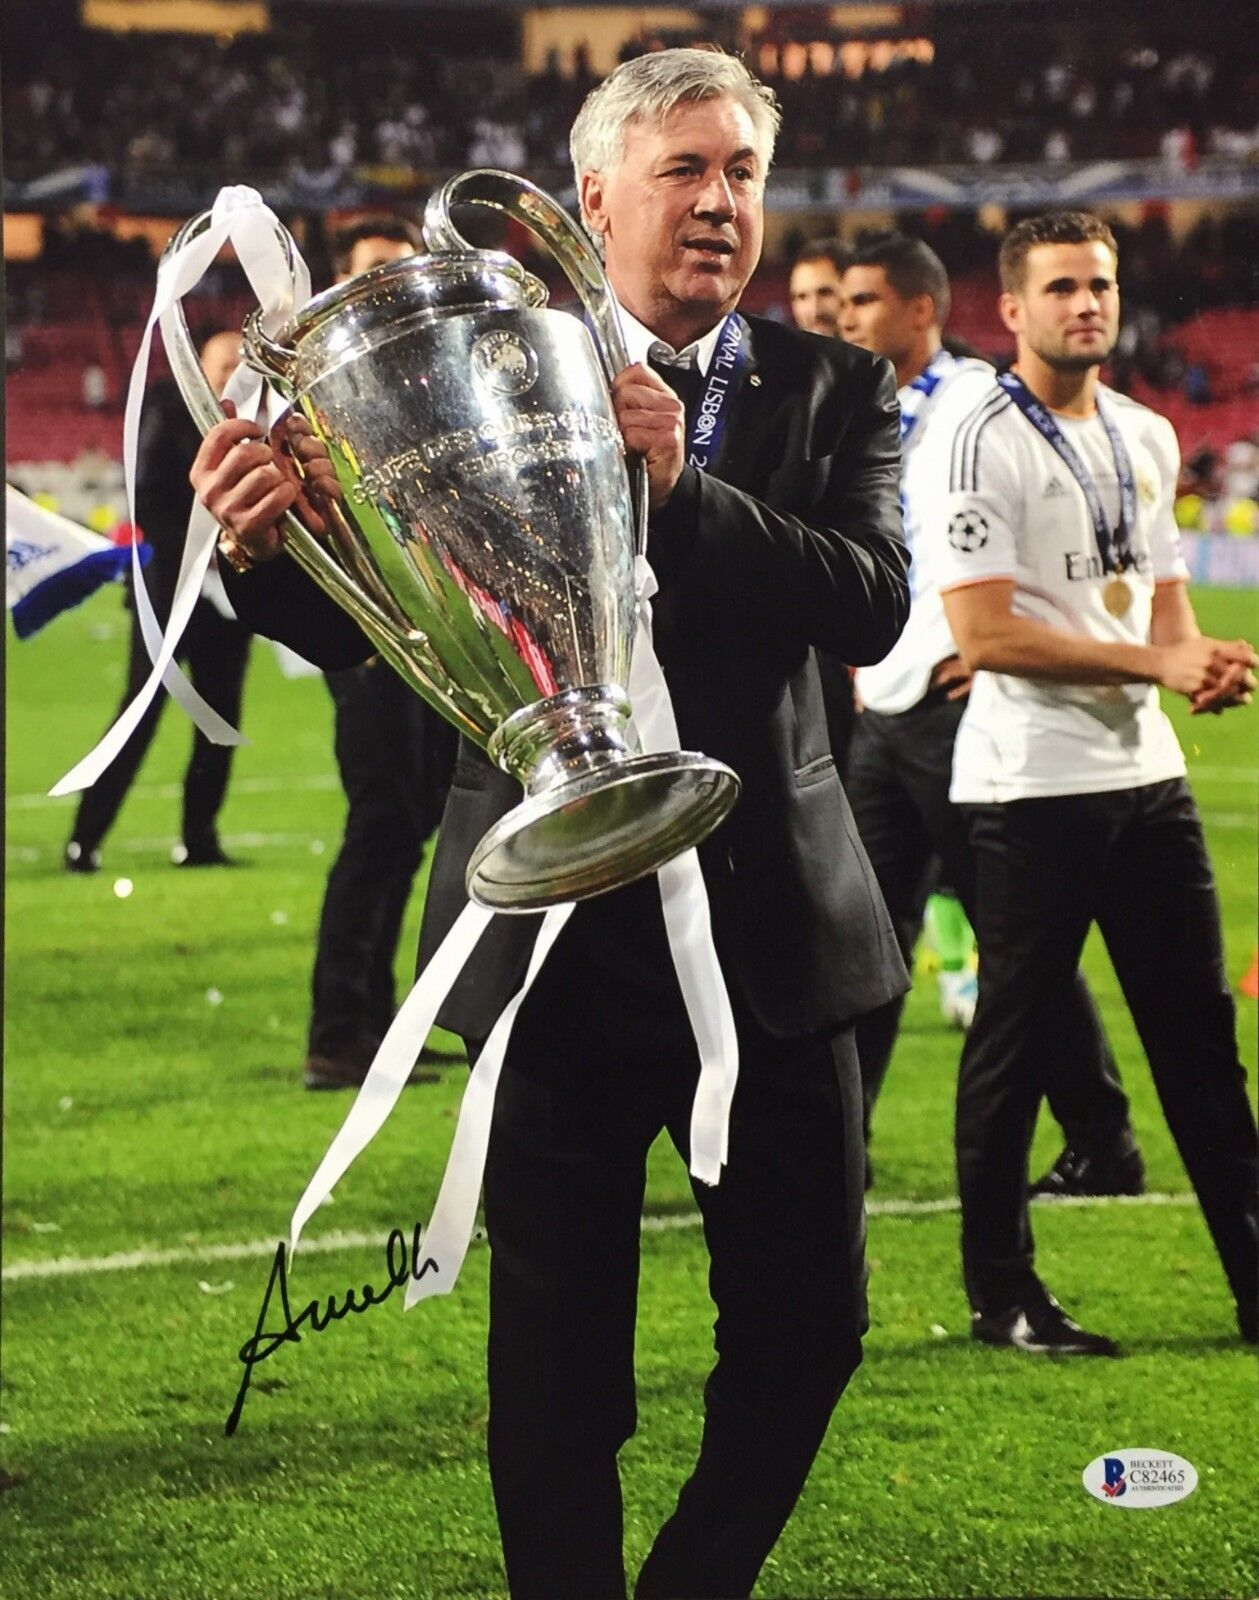 Carlo Ancelotti Signed 11x14 Soccer Photo BAS Beckett C82465